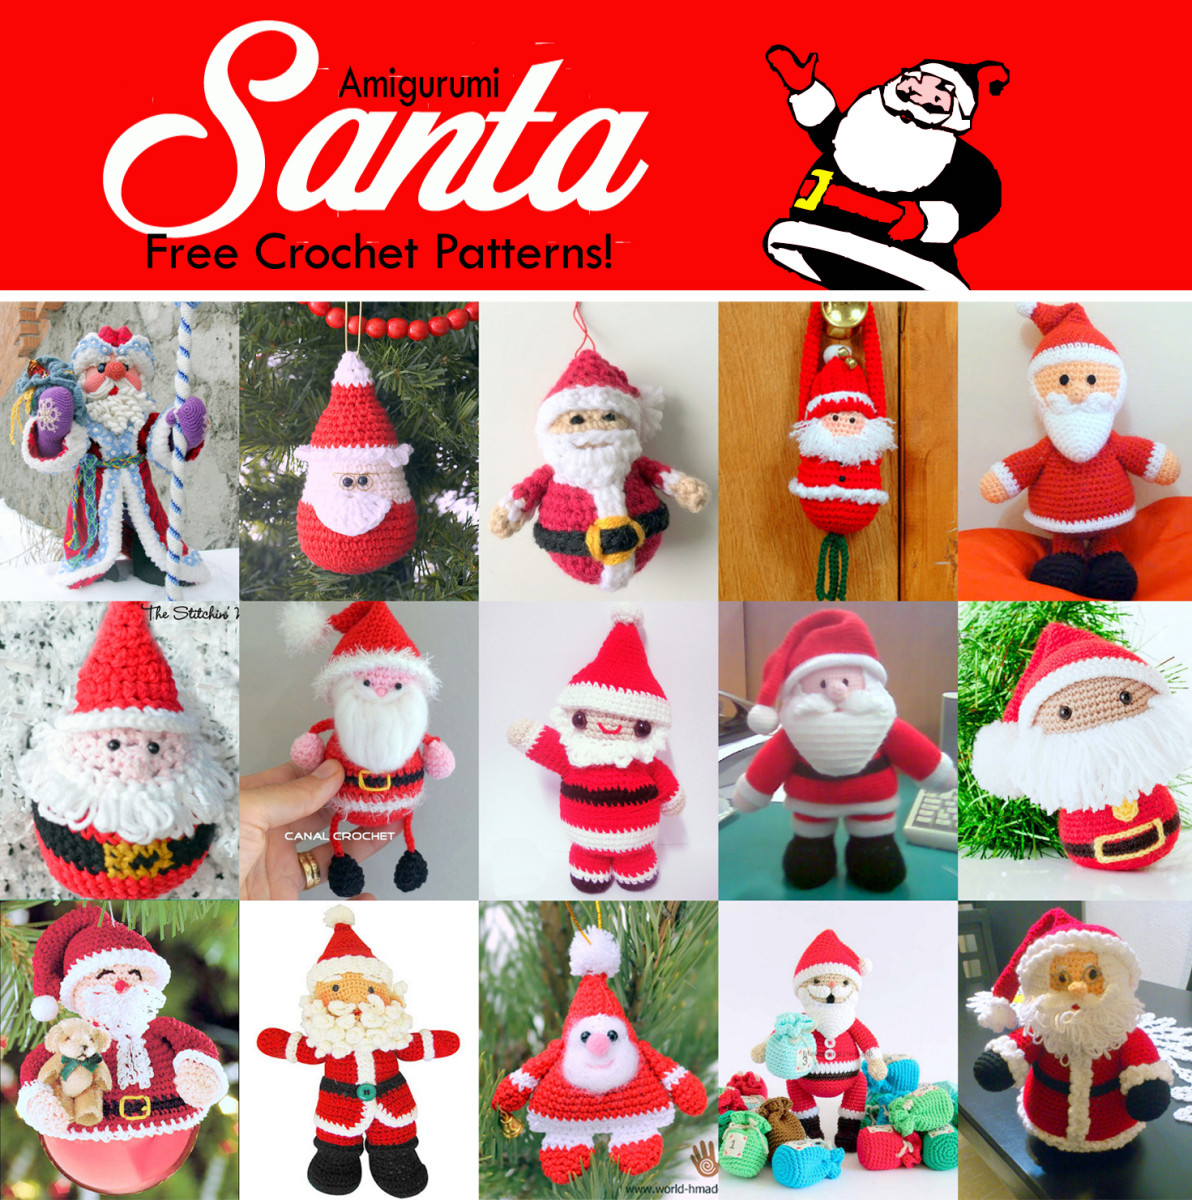 Free Crochet Pattern for a Santa Claus Amigurumi ⋆ Crochet Kingdom | 524x520